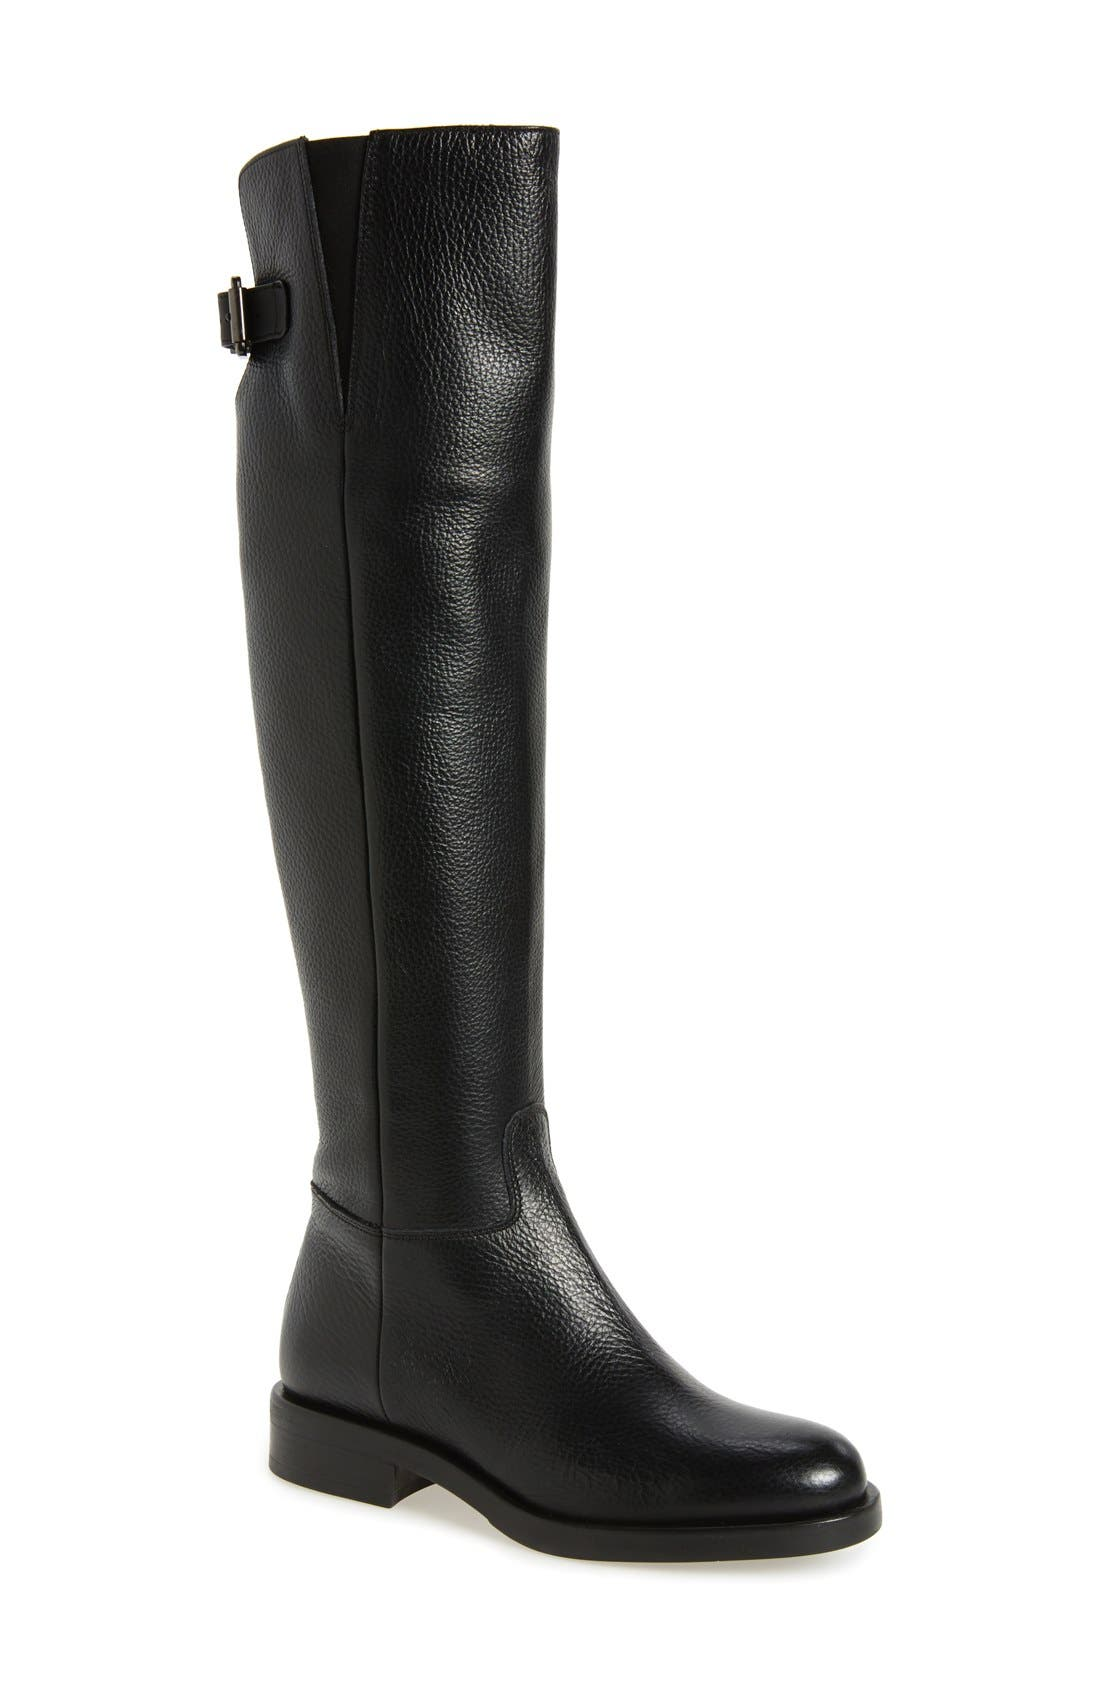 Alternate Image 1 Selected - Tiffi Tall Riding Boot (Women)